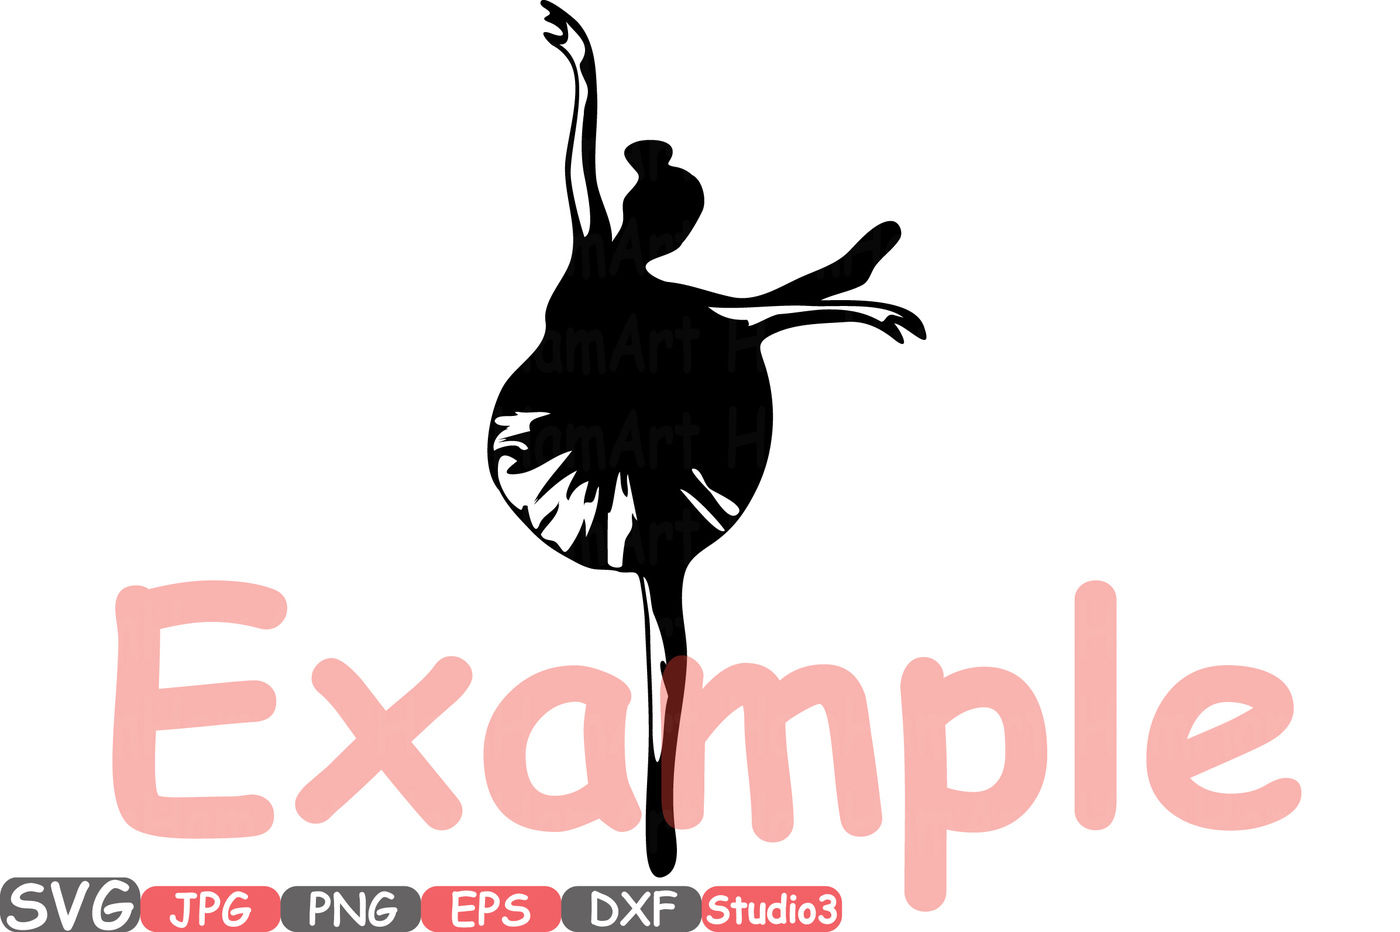 image relating to Ballerina Silhouette Printable referred to as Ballet Ballerina Silhouette SVG Chopping Documents Electronic Clip